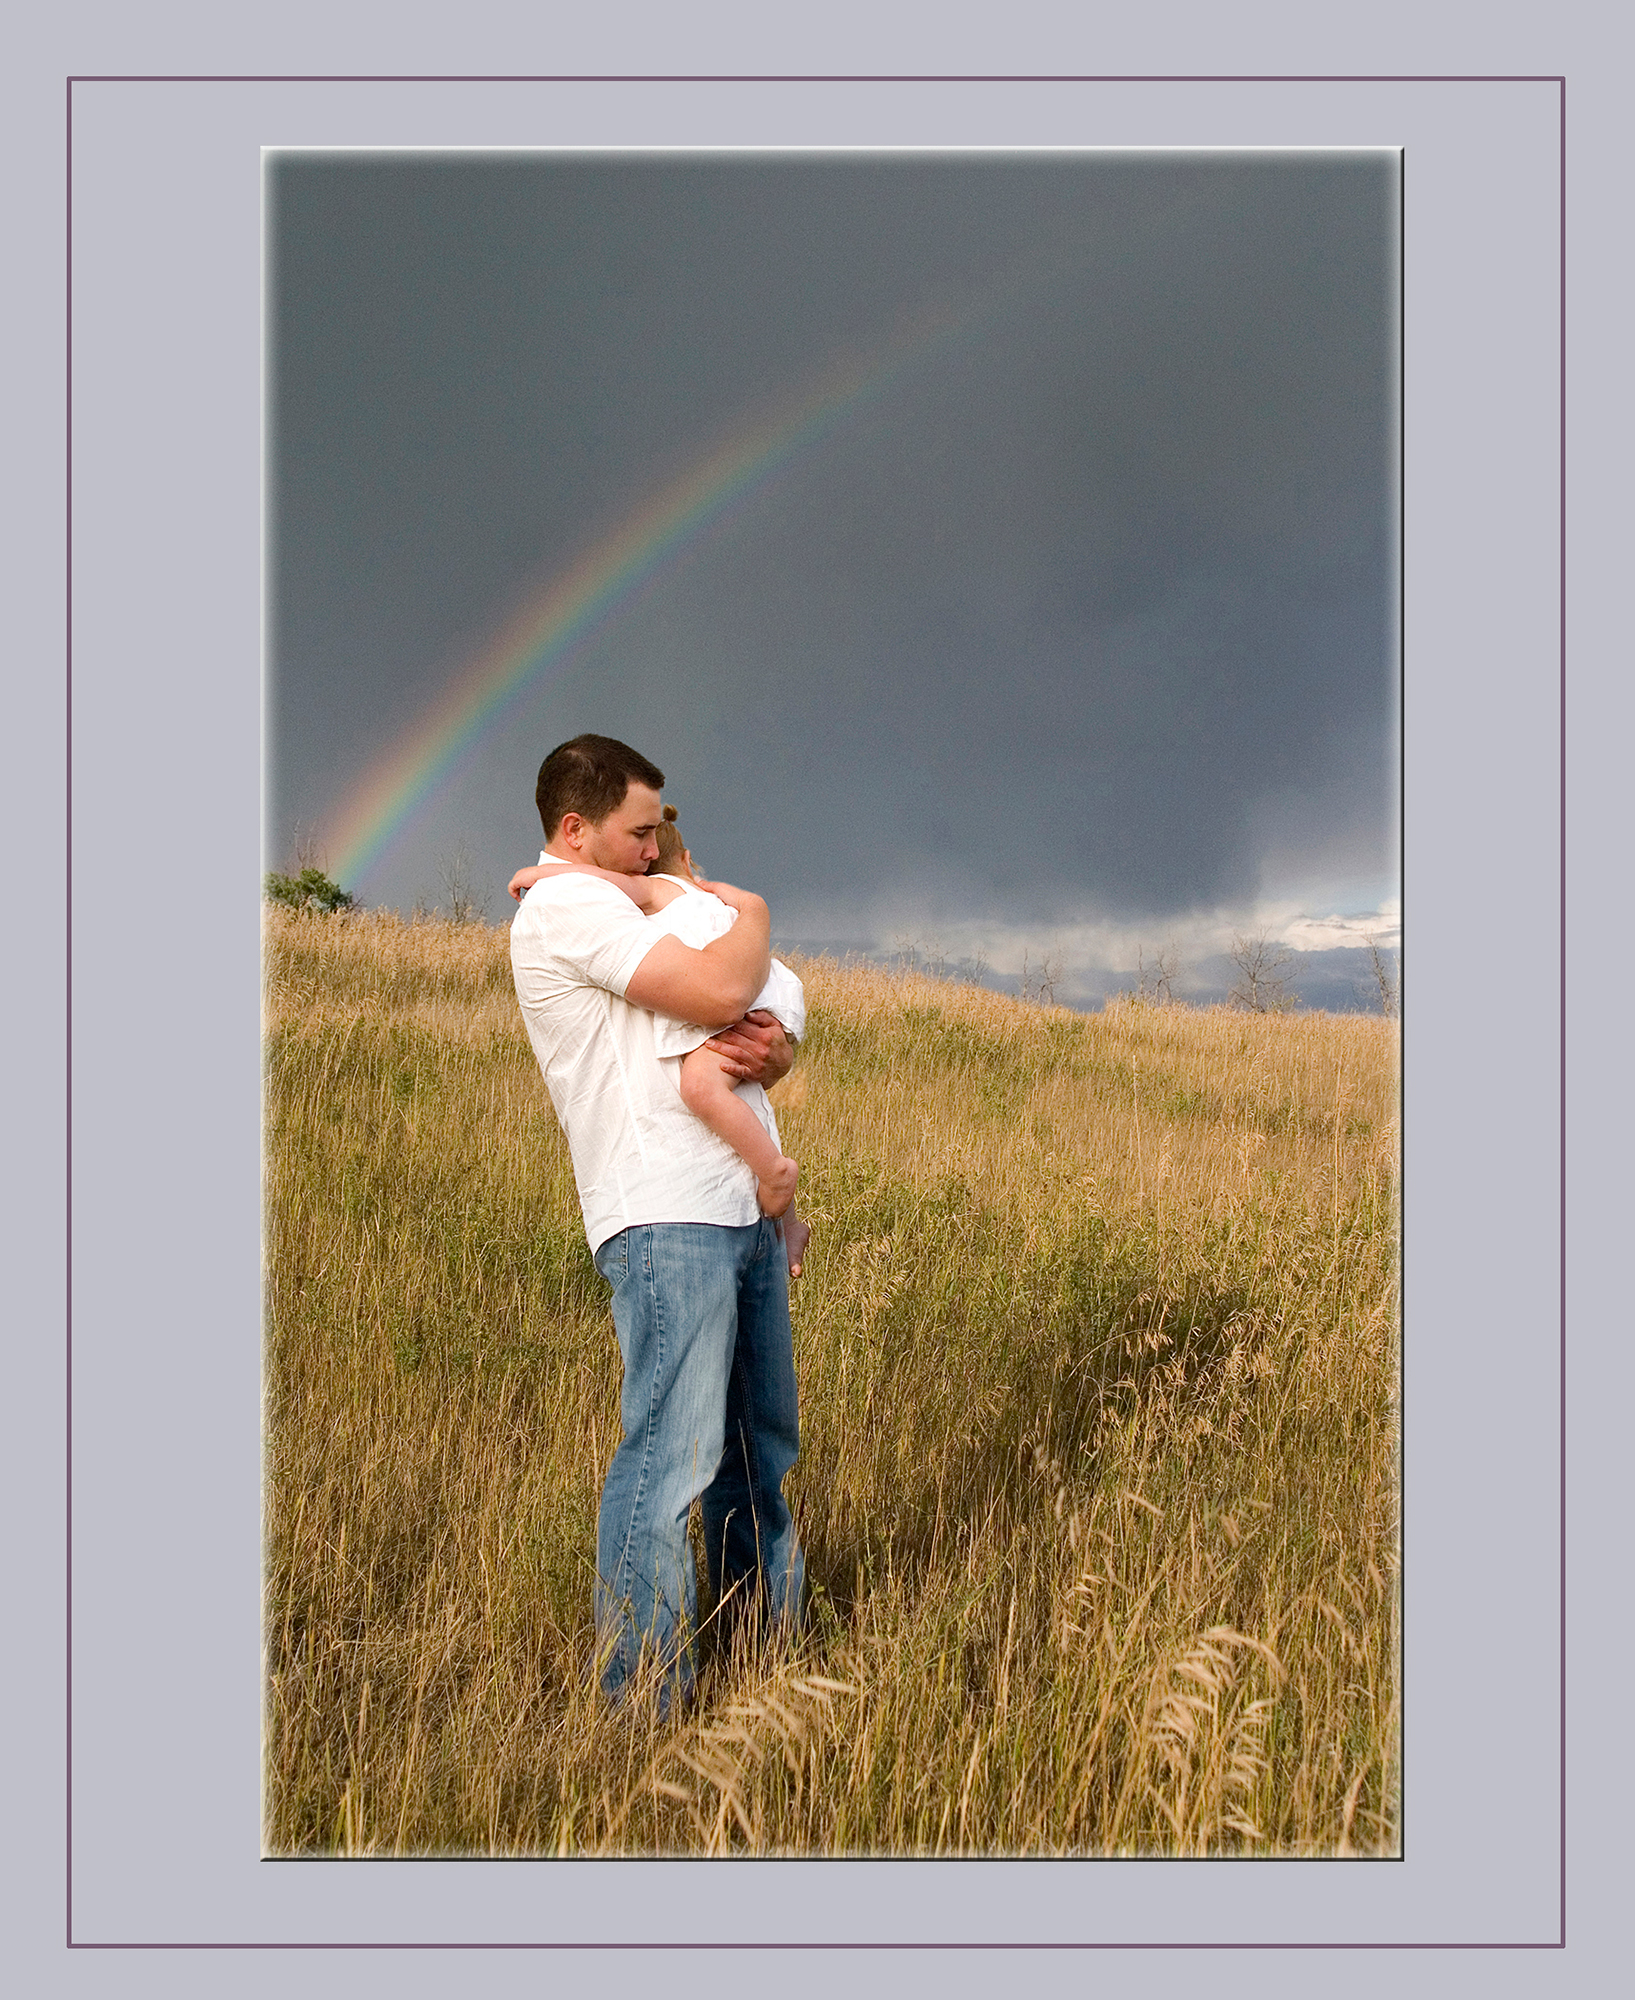 Father and Daughter standing in wheat field rainbow in background